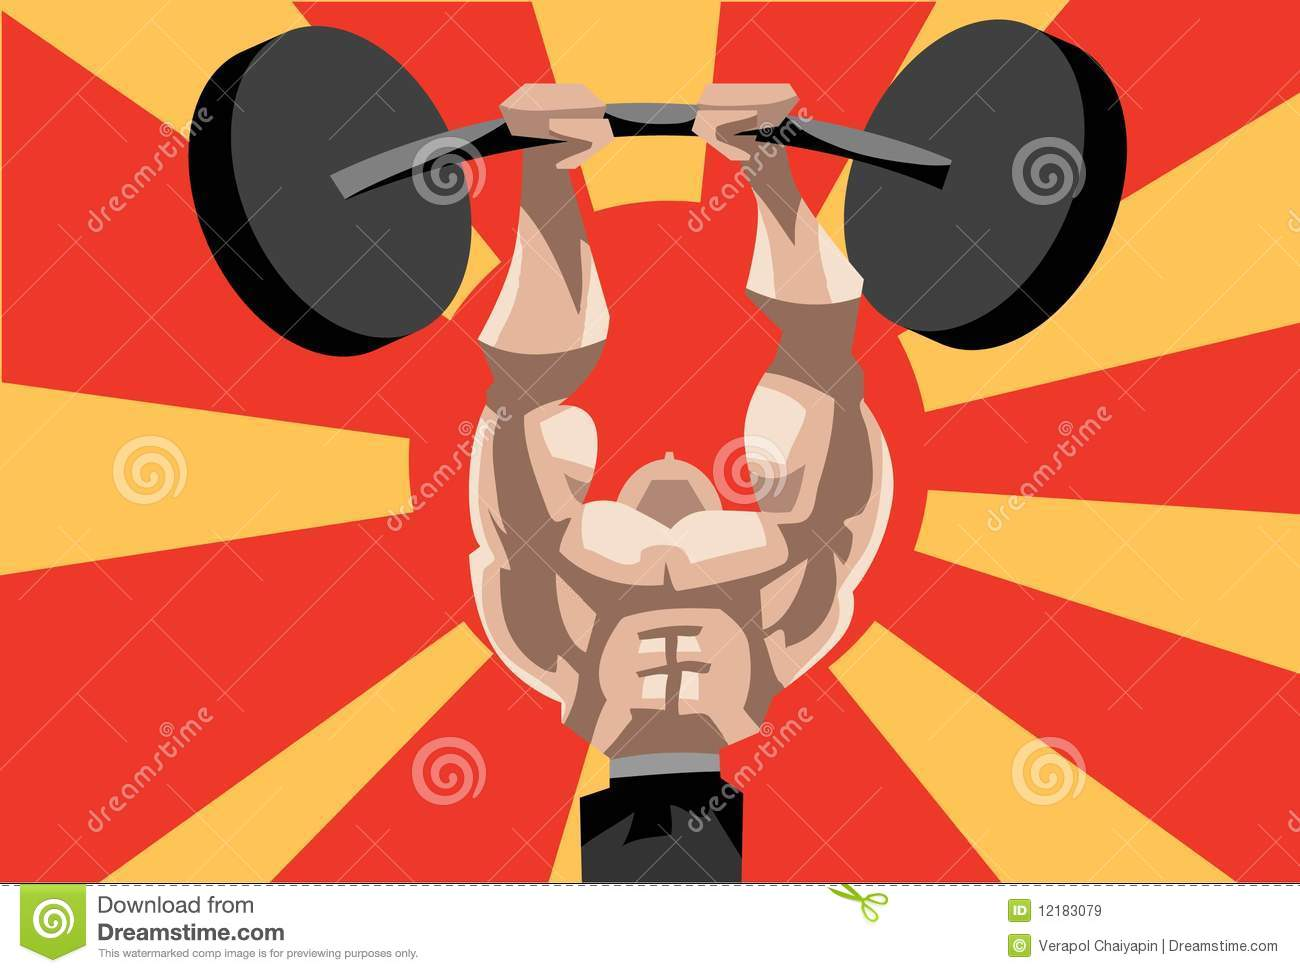 weightlifting stock images royalty free images vectors weightlifting is a herculean task royalty free stock